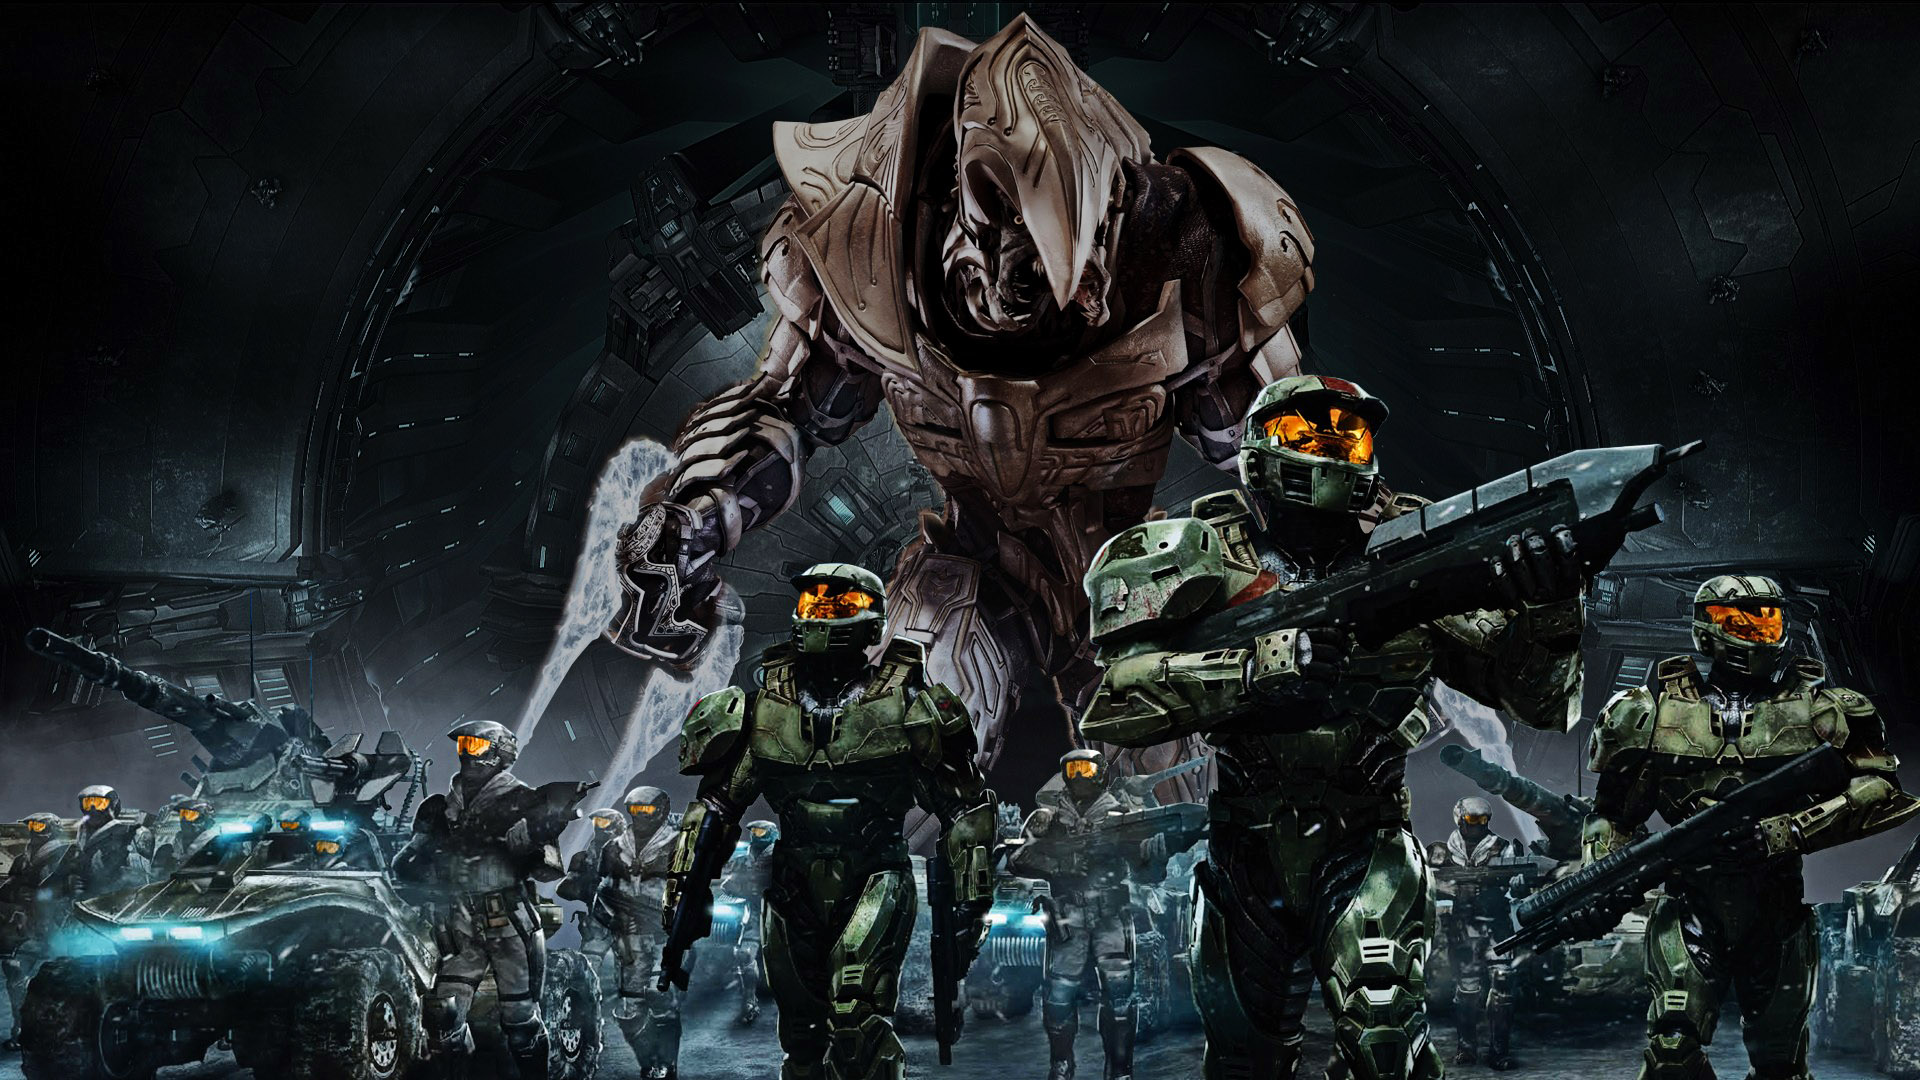 Image   Cool Halo Army HD Wallpaperjpg   Halo Nation The Halo 1920x1080